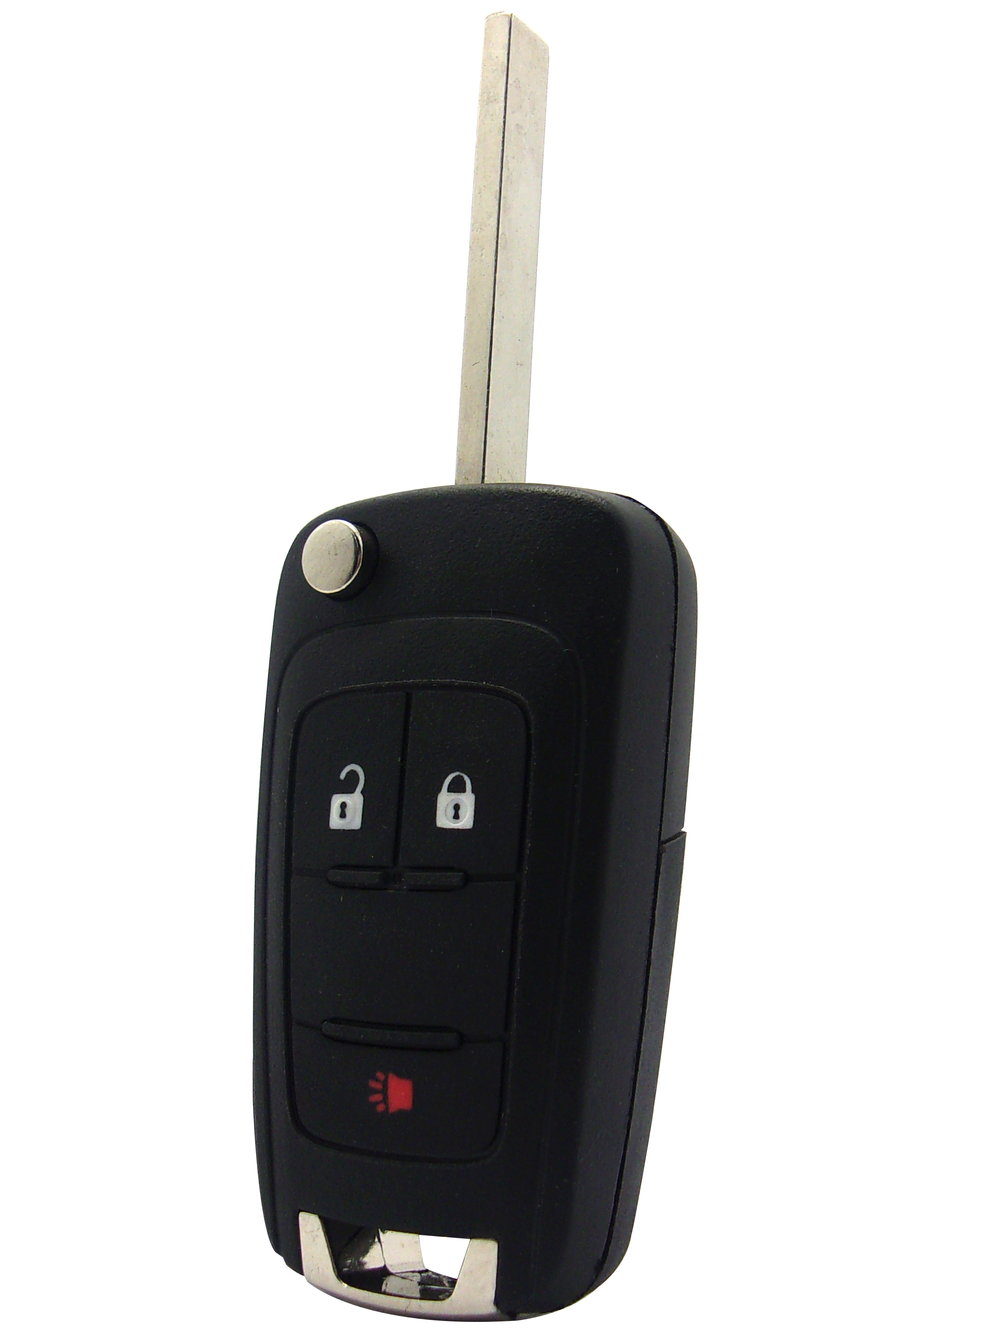 2015 2017 chevy equinox remote key includes programming. Black Bedroom Furniture Sets. Home Design Ideas